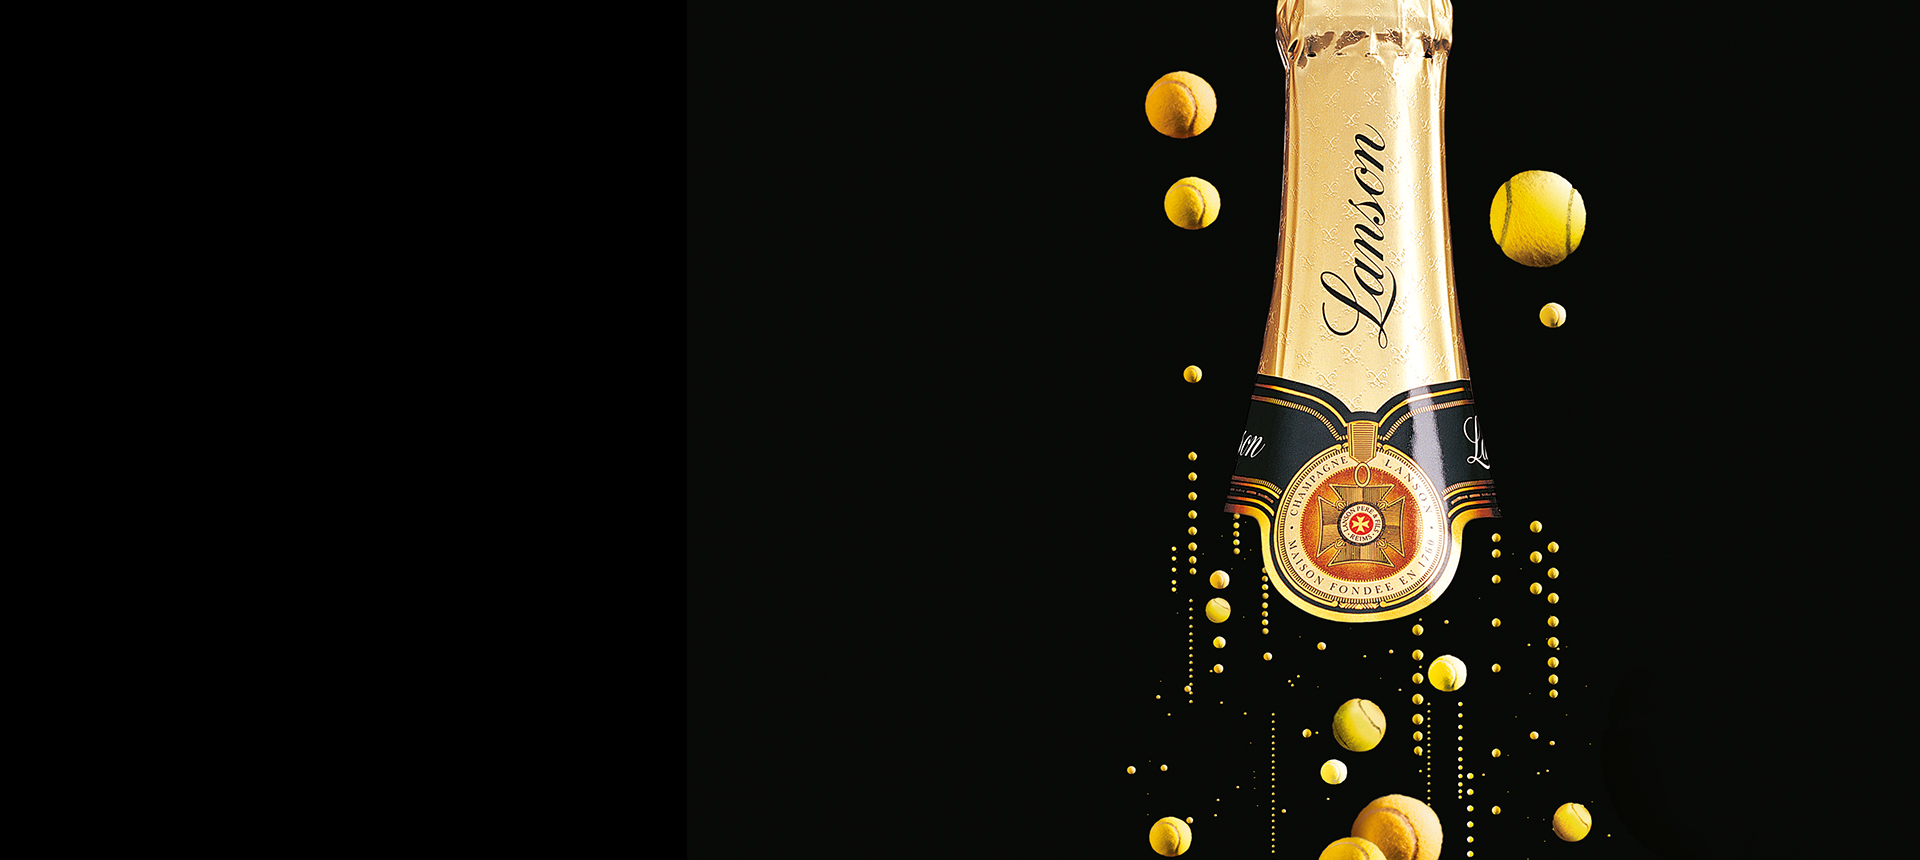 Luxury goods and lifestyle advertising campaign for Lanson by Dinosaur